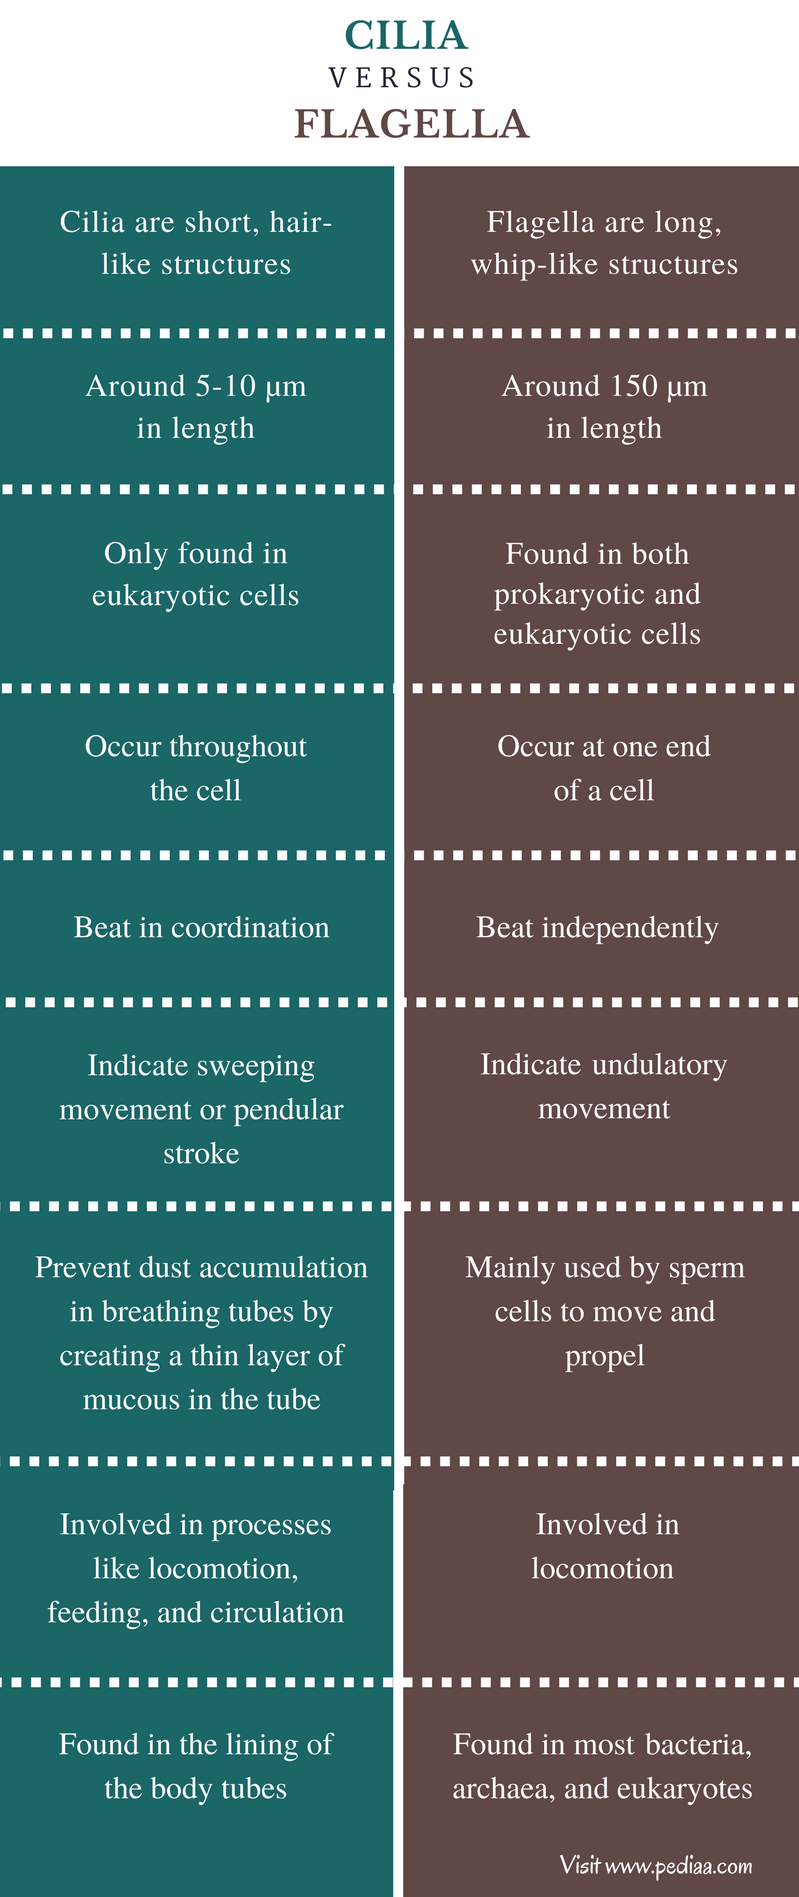 Difference Between Cilia and Flagella- Comparison Summary